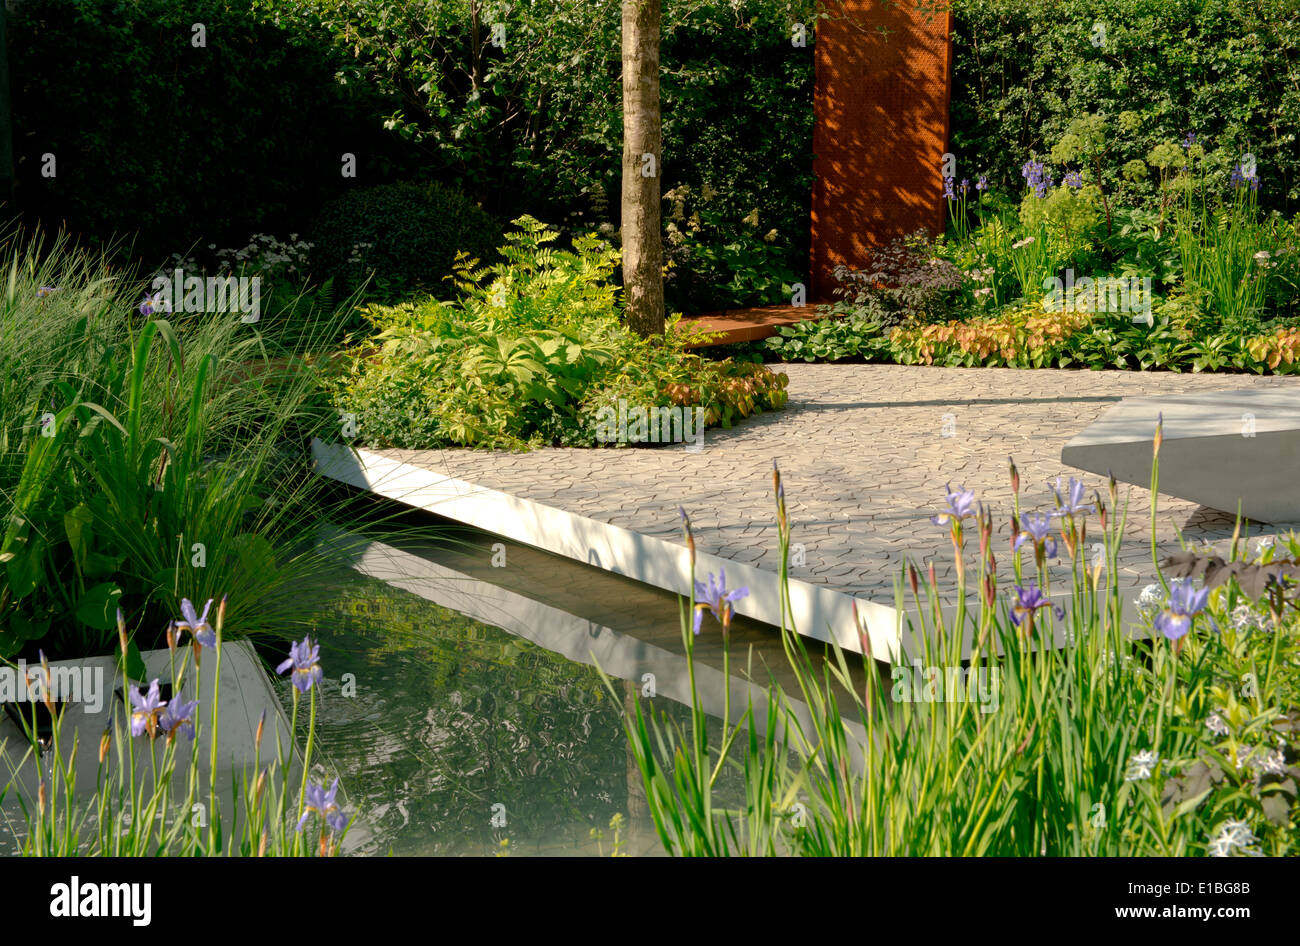 The RBC Waterscape Garden a gold medal winner designed by Hugo Bugg at The Chelsea Flower Show 2014 - Stock Image